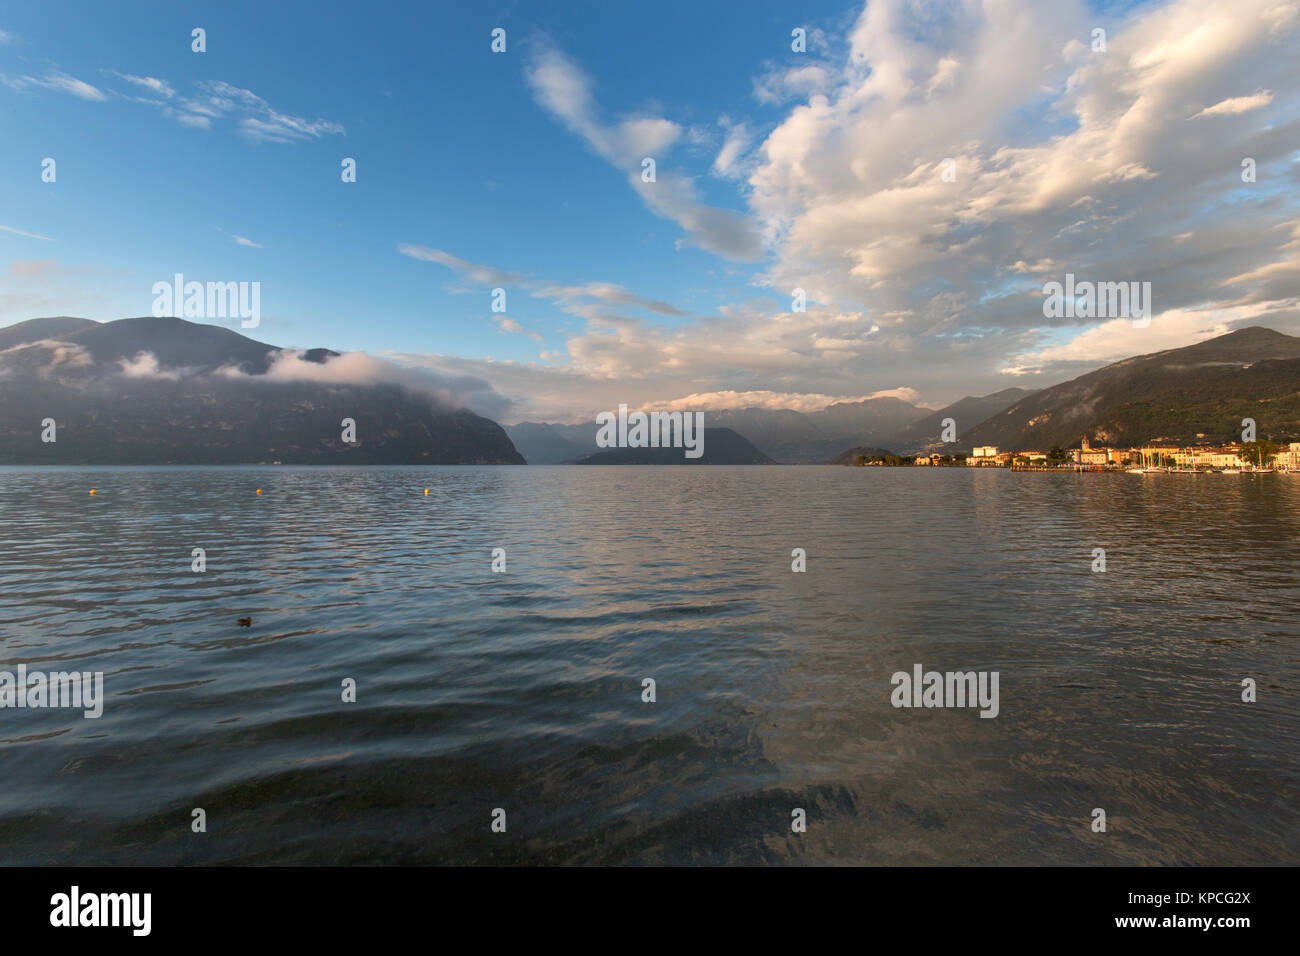 Lake Iseo, Italy. Picturesque dusk view of Lake Iseo, with the town of Iseo on the right of the image and the island - Stock Image